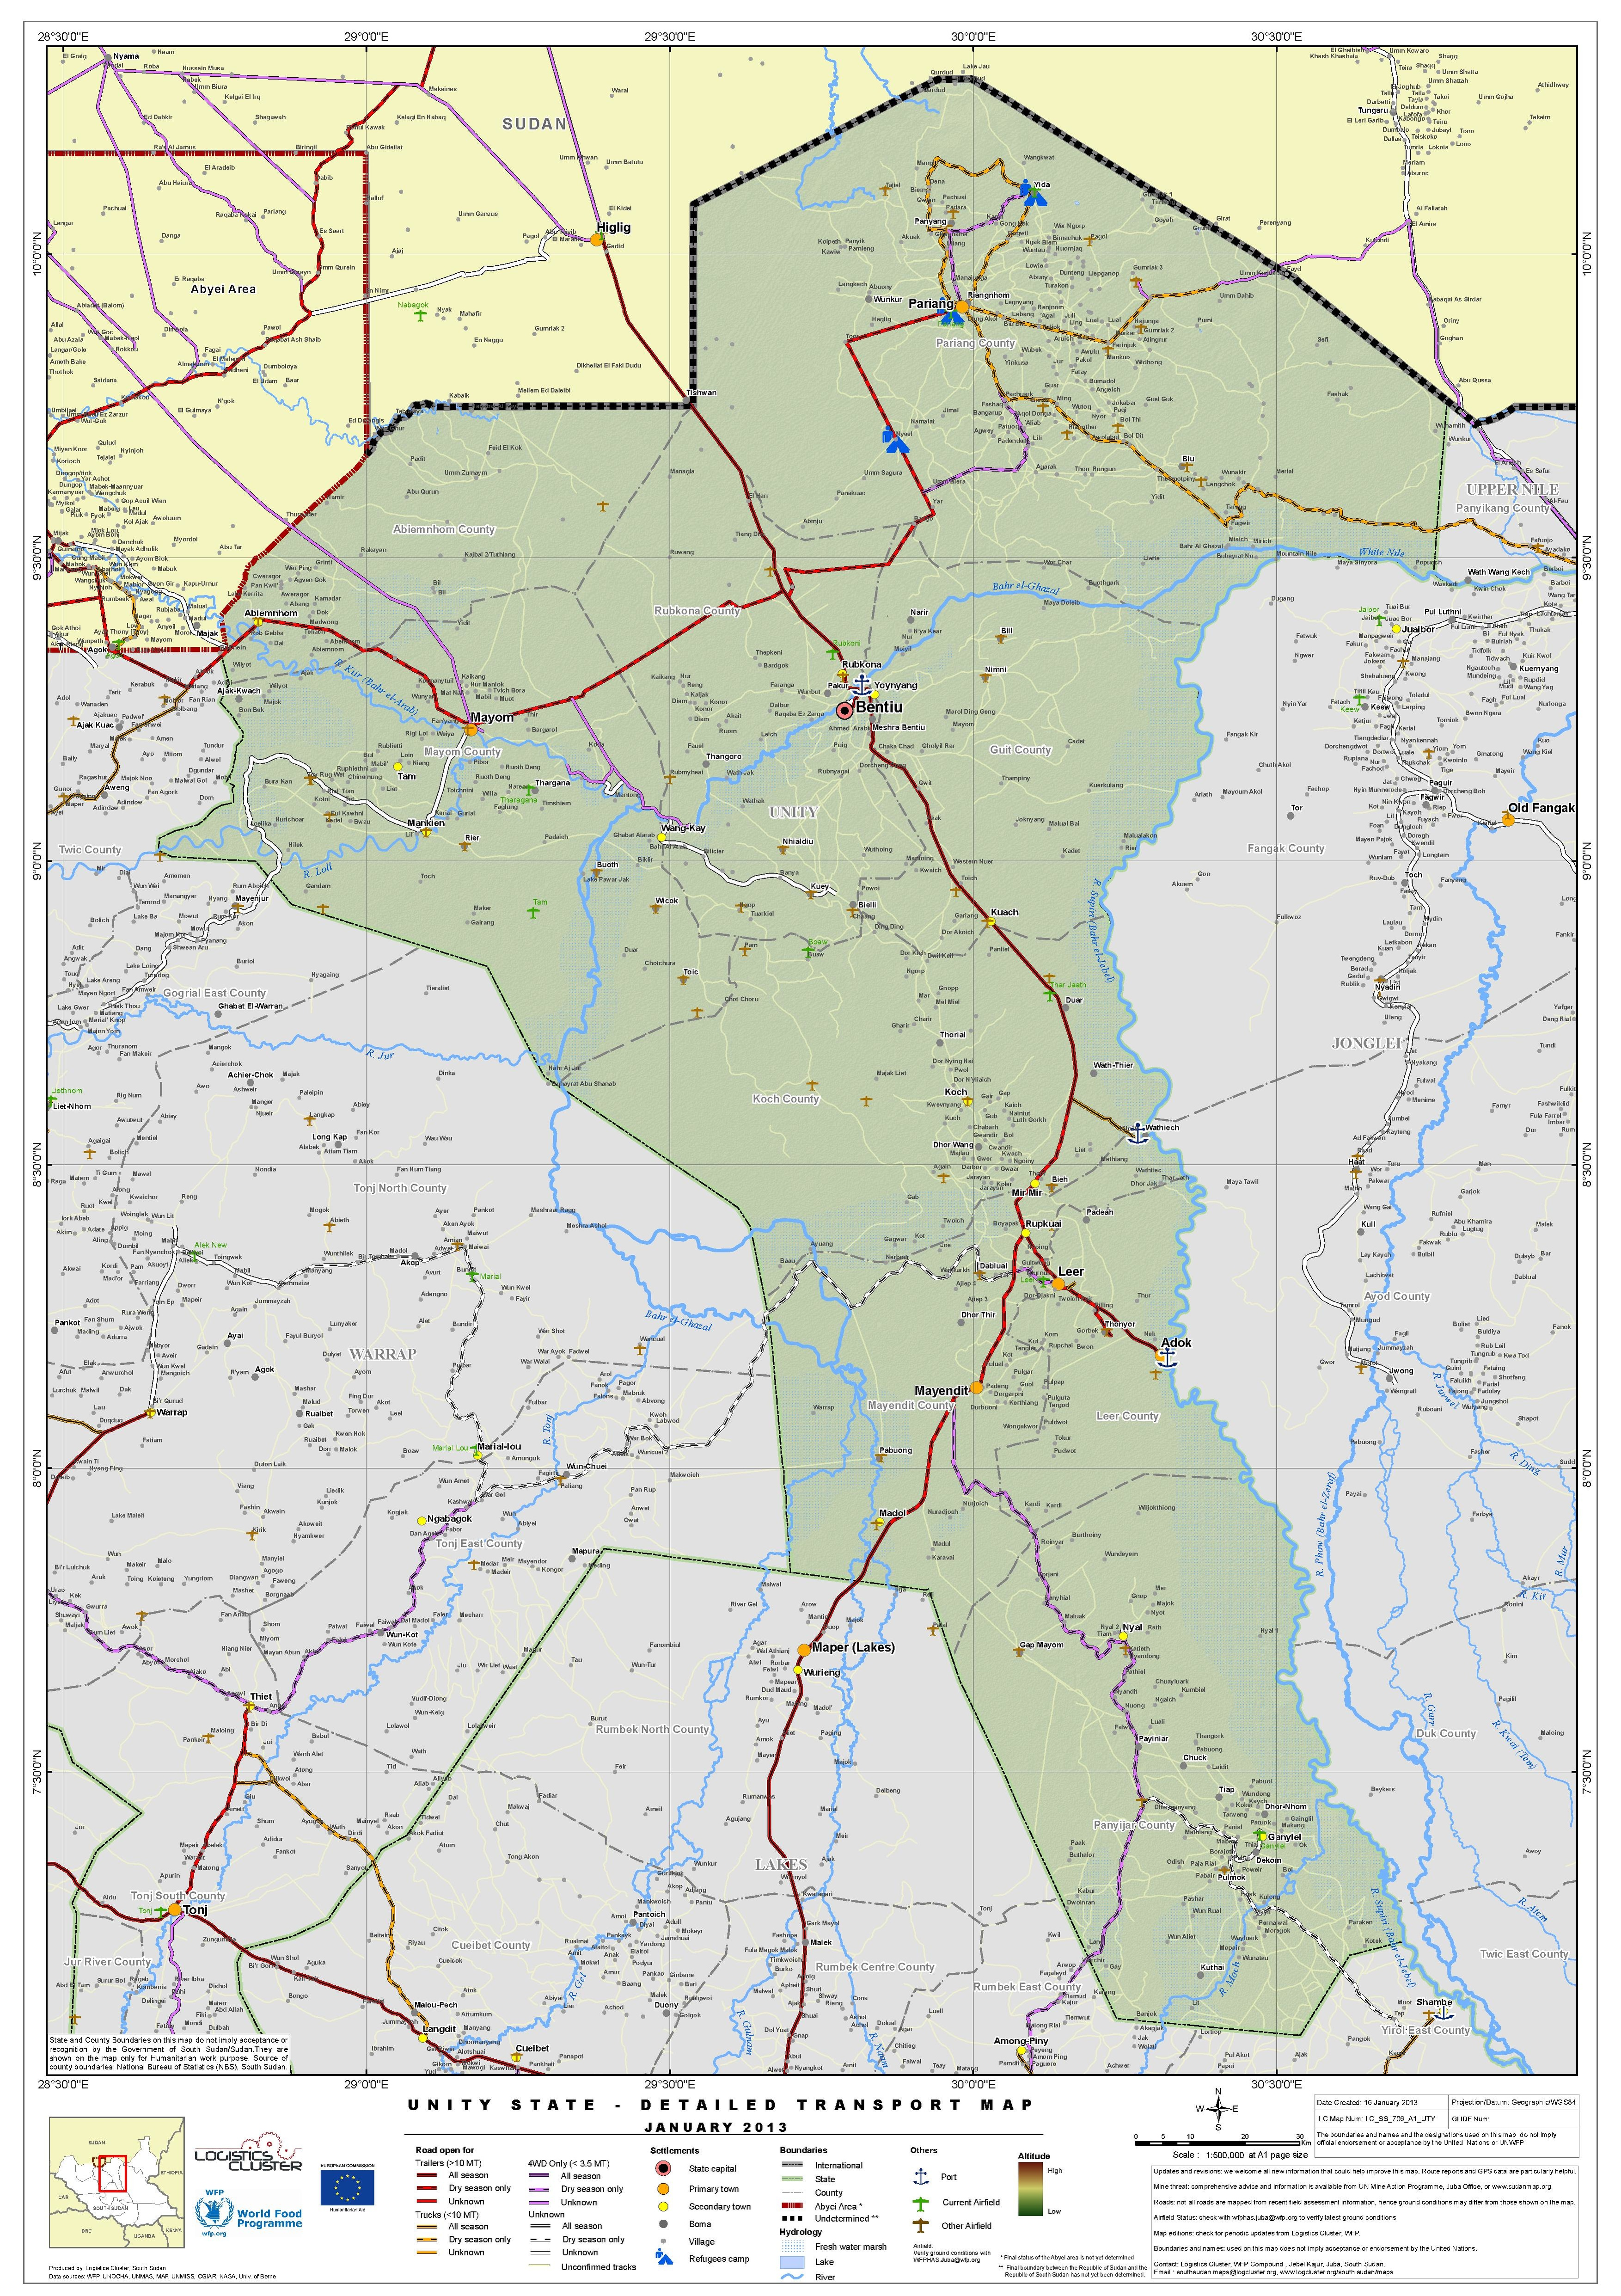 Filesouth sudan unity state detailed transport map jan 2013pdf filesouth sudan unity state detailed transport map jan 2013pdf gumiabroncs Choice Image